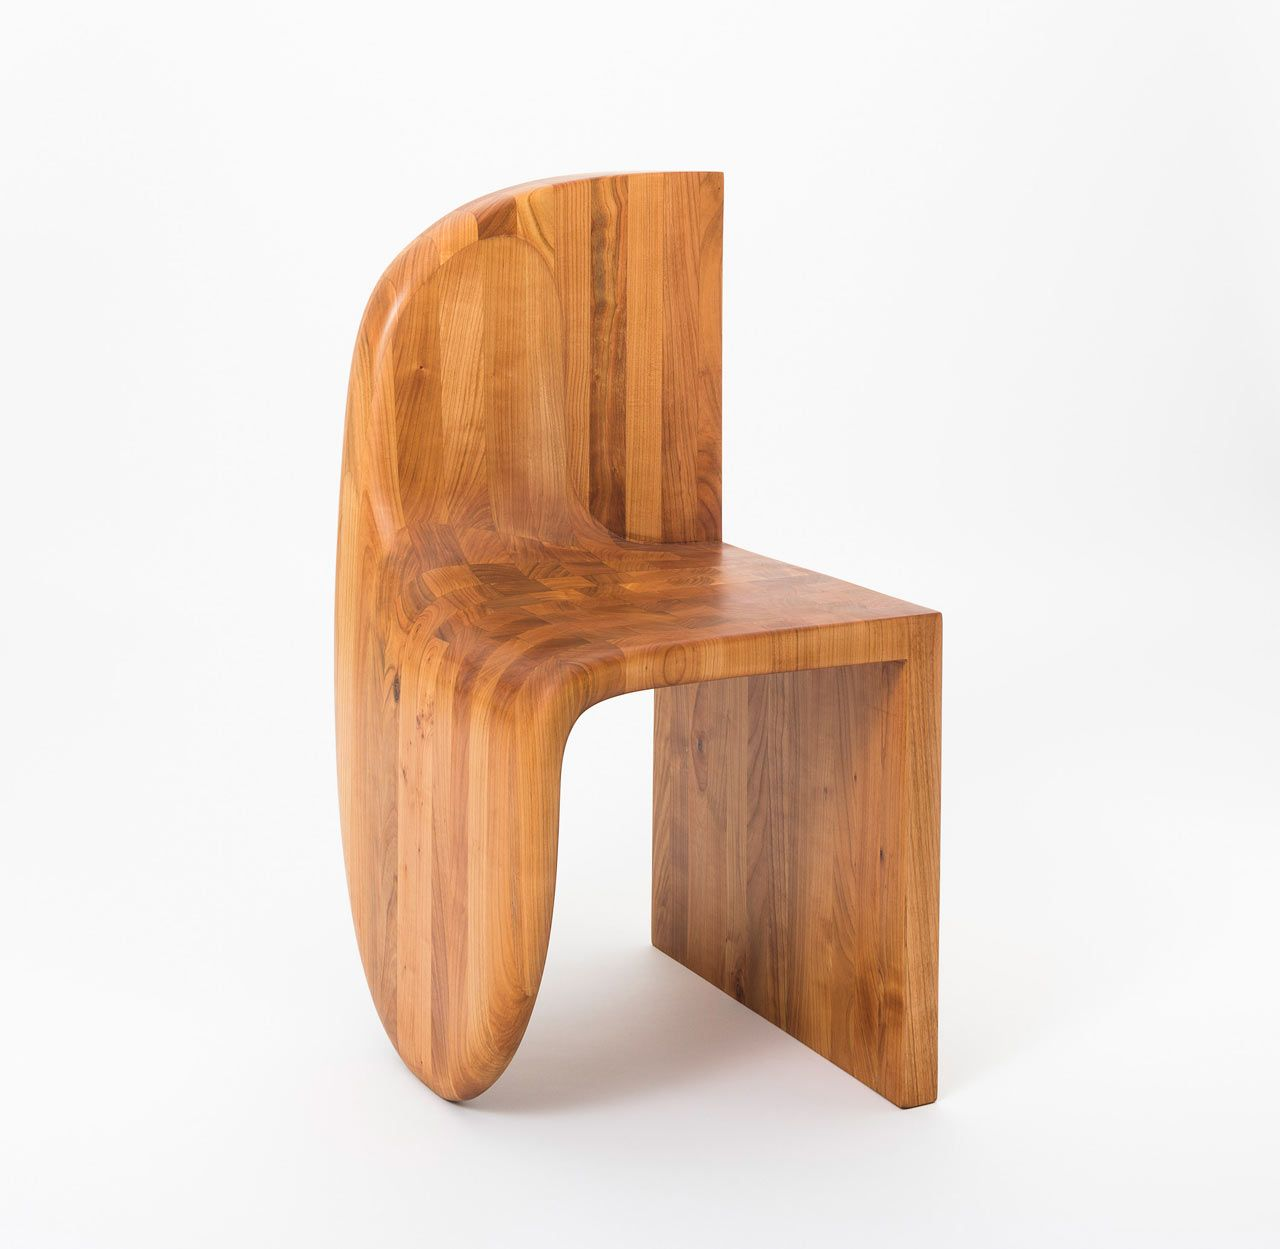 Polymorph Chair Combines Two Design Concepts Into One Chair Chair Design Wooden Modern Wooden Chair Art Chair